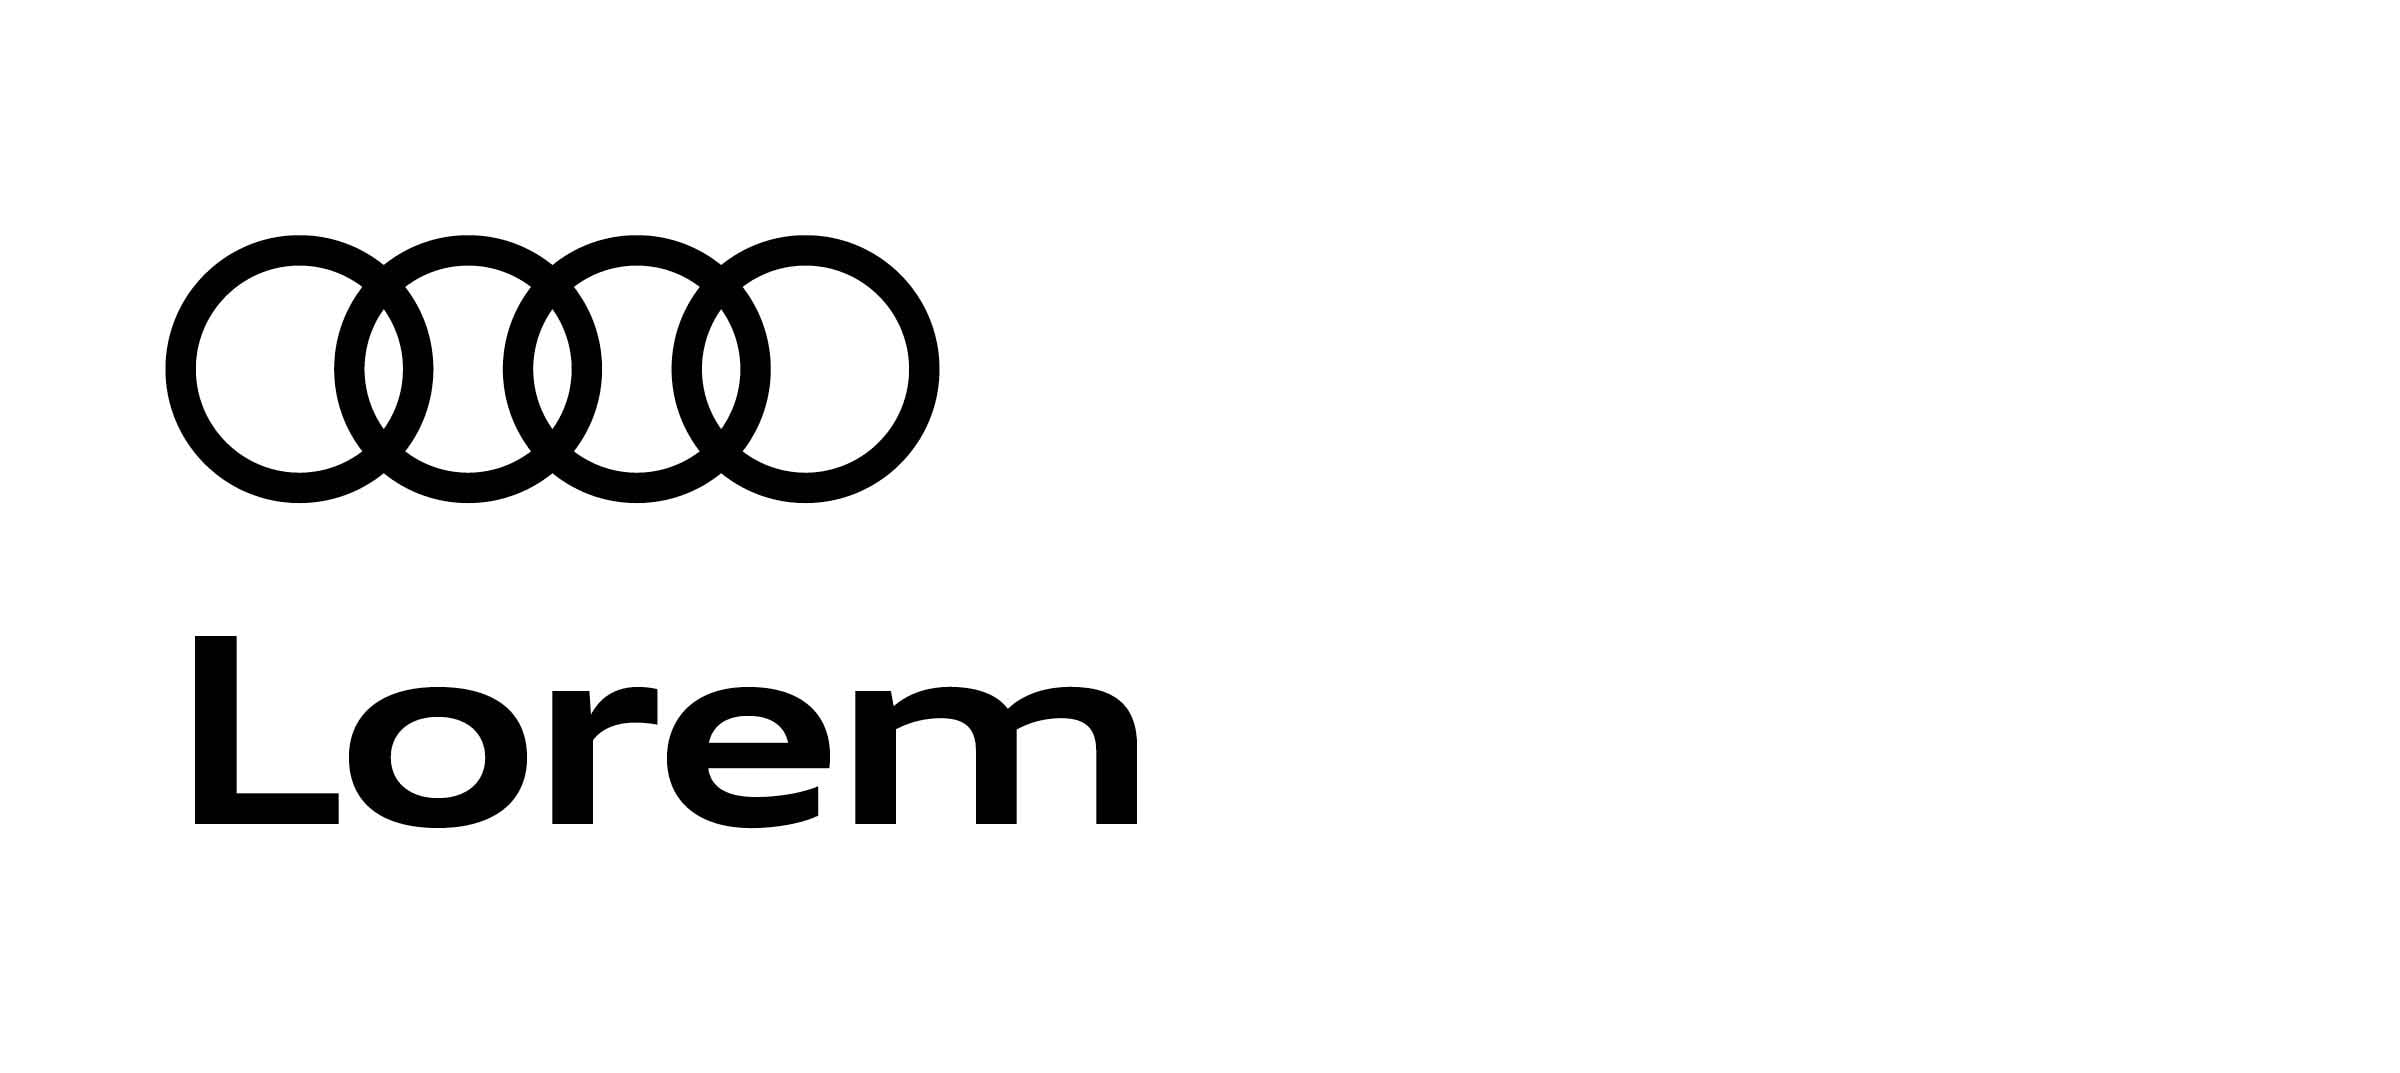 brandplattform are rings line basics derived audi en the equal from typography a case this other logo ci in and thickness ringe intro ratios convey effect of harmonious